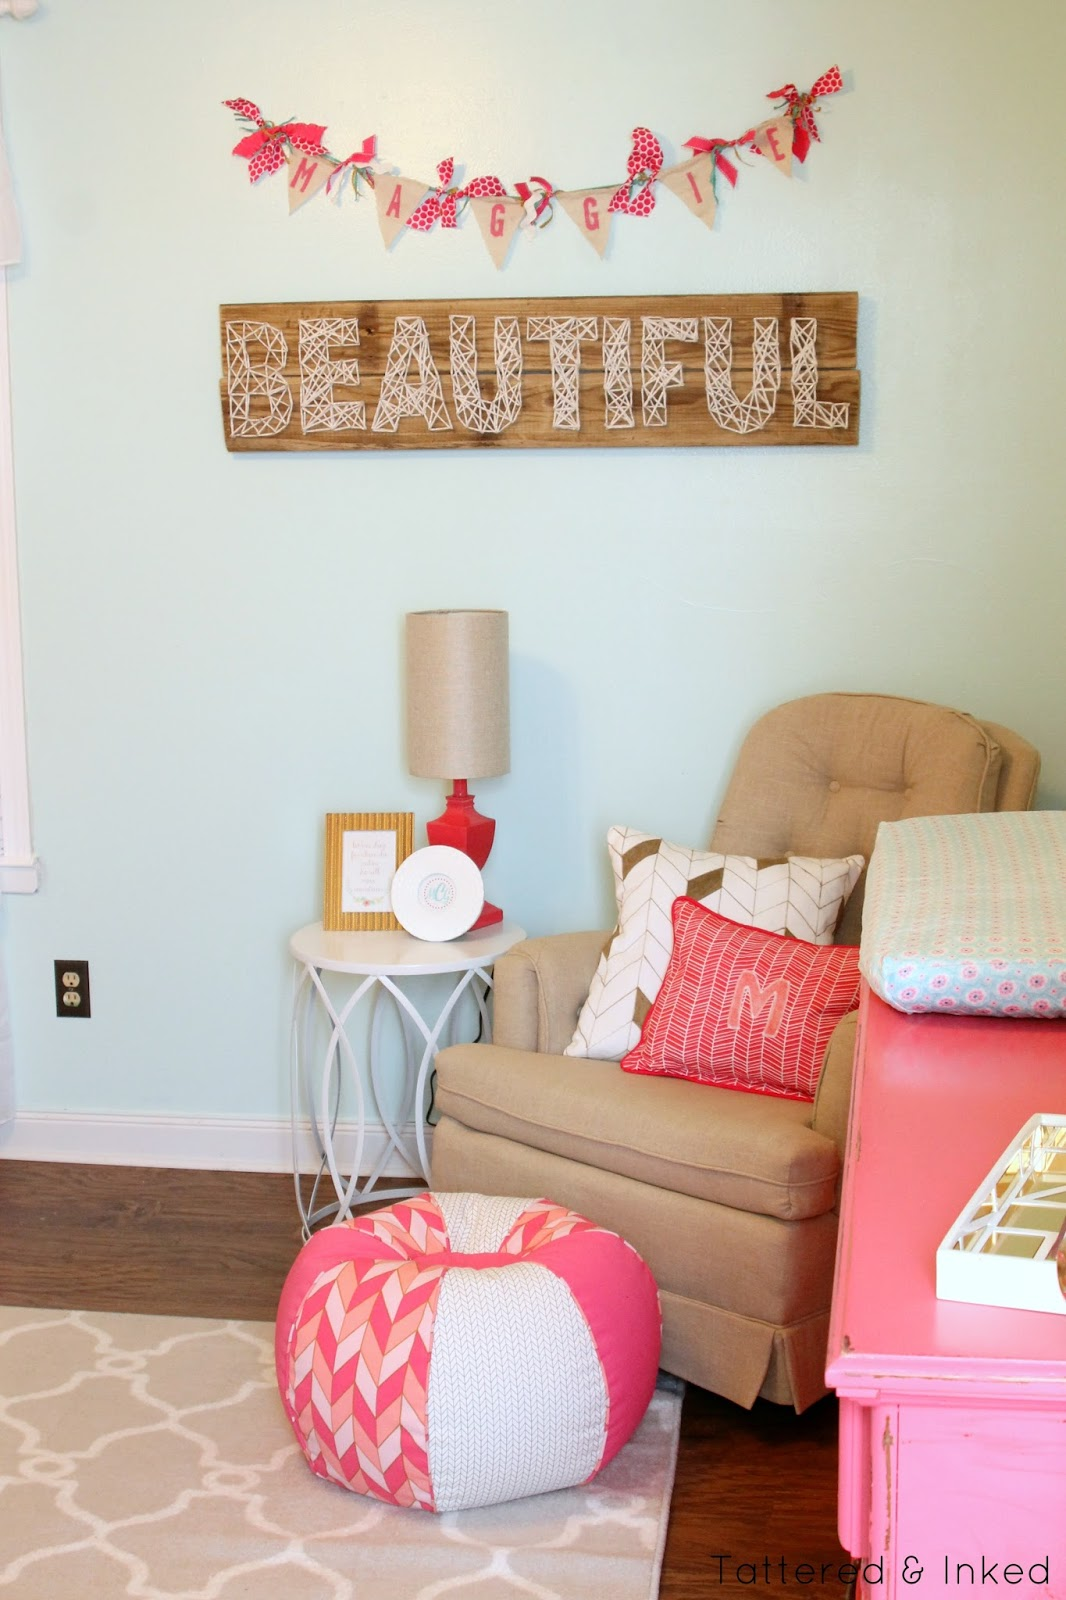 Tattered And Inked Glamorous Gold Amp Pink Nursery Reveal